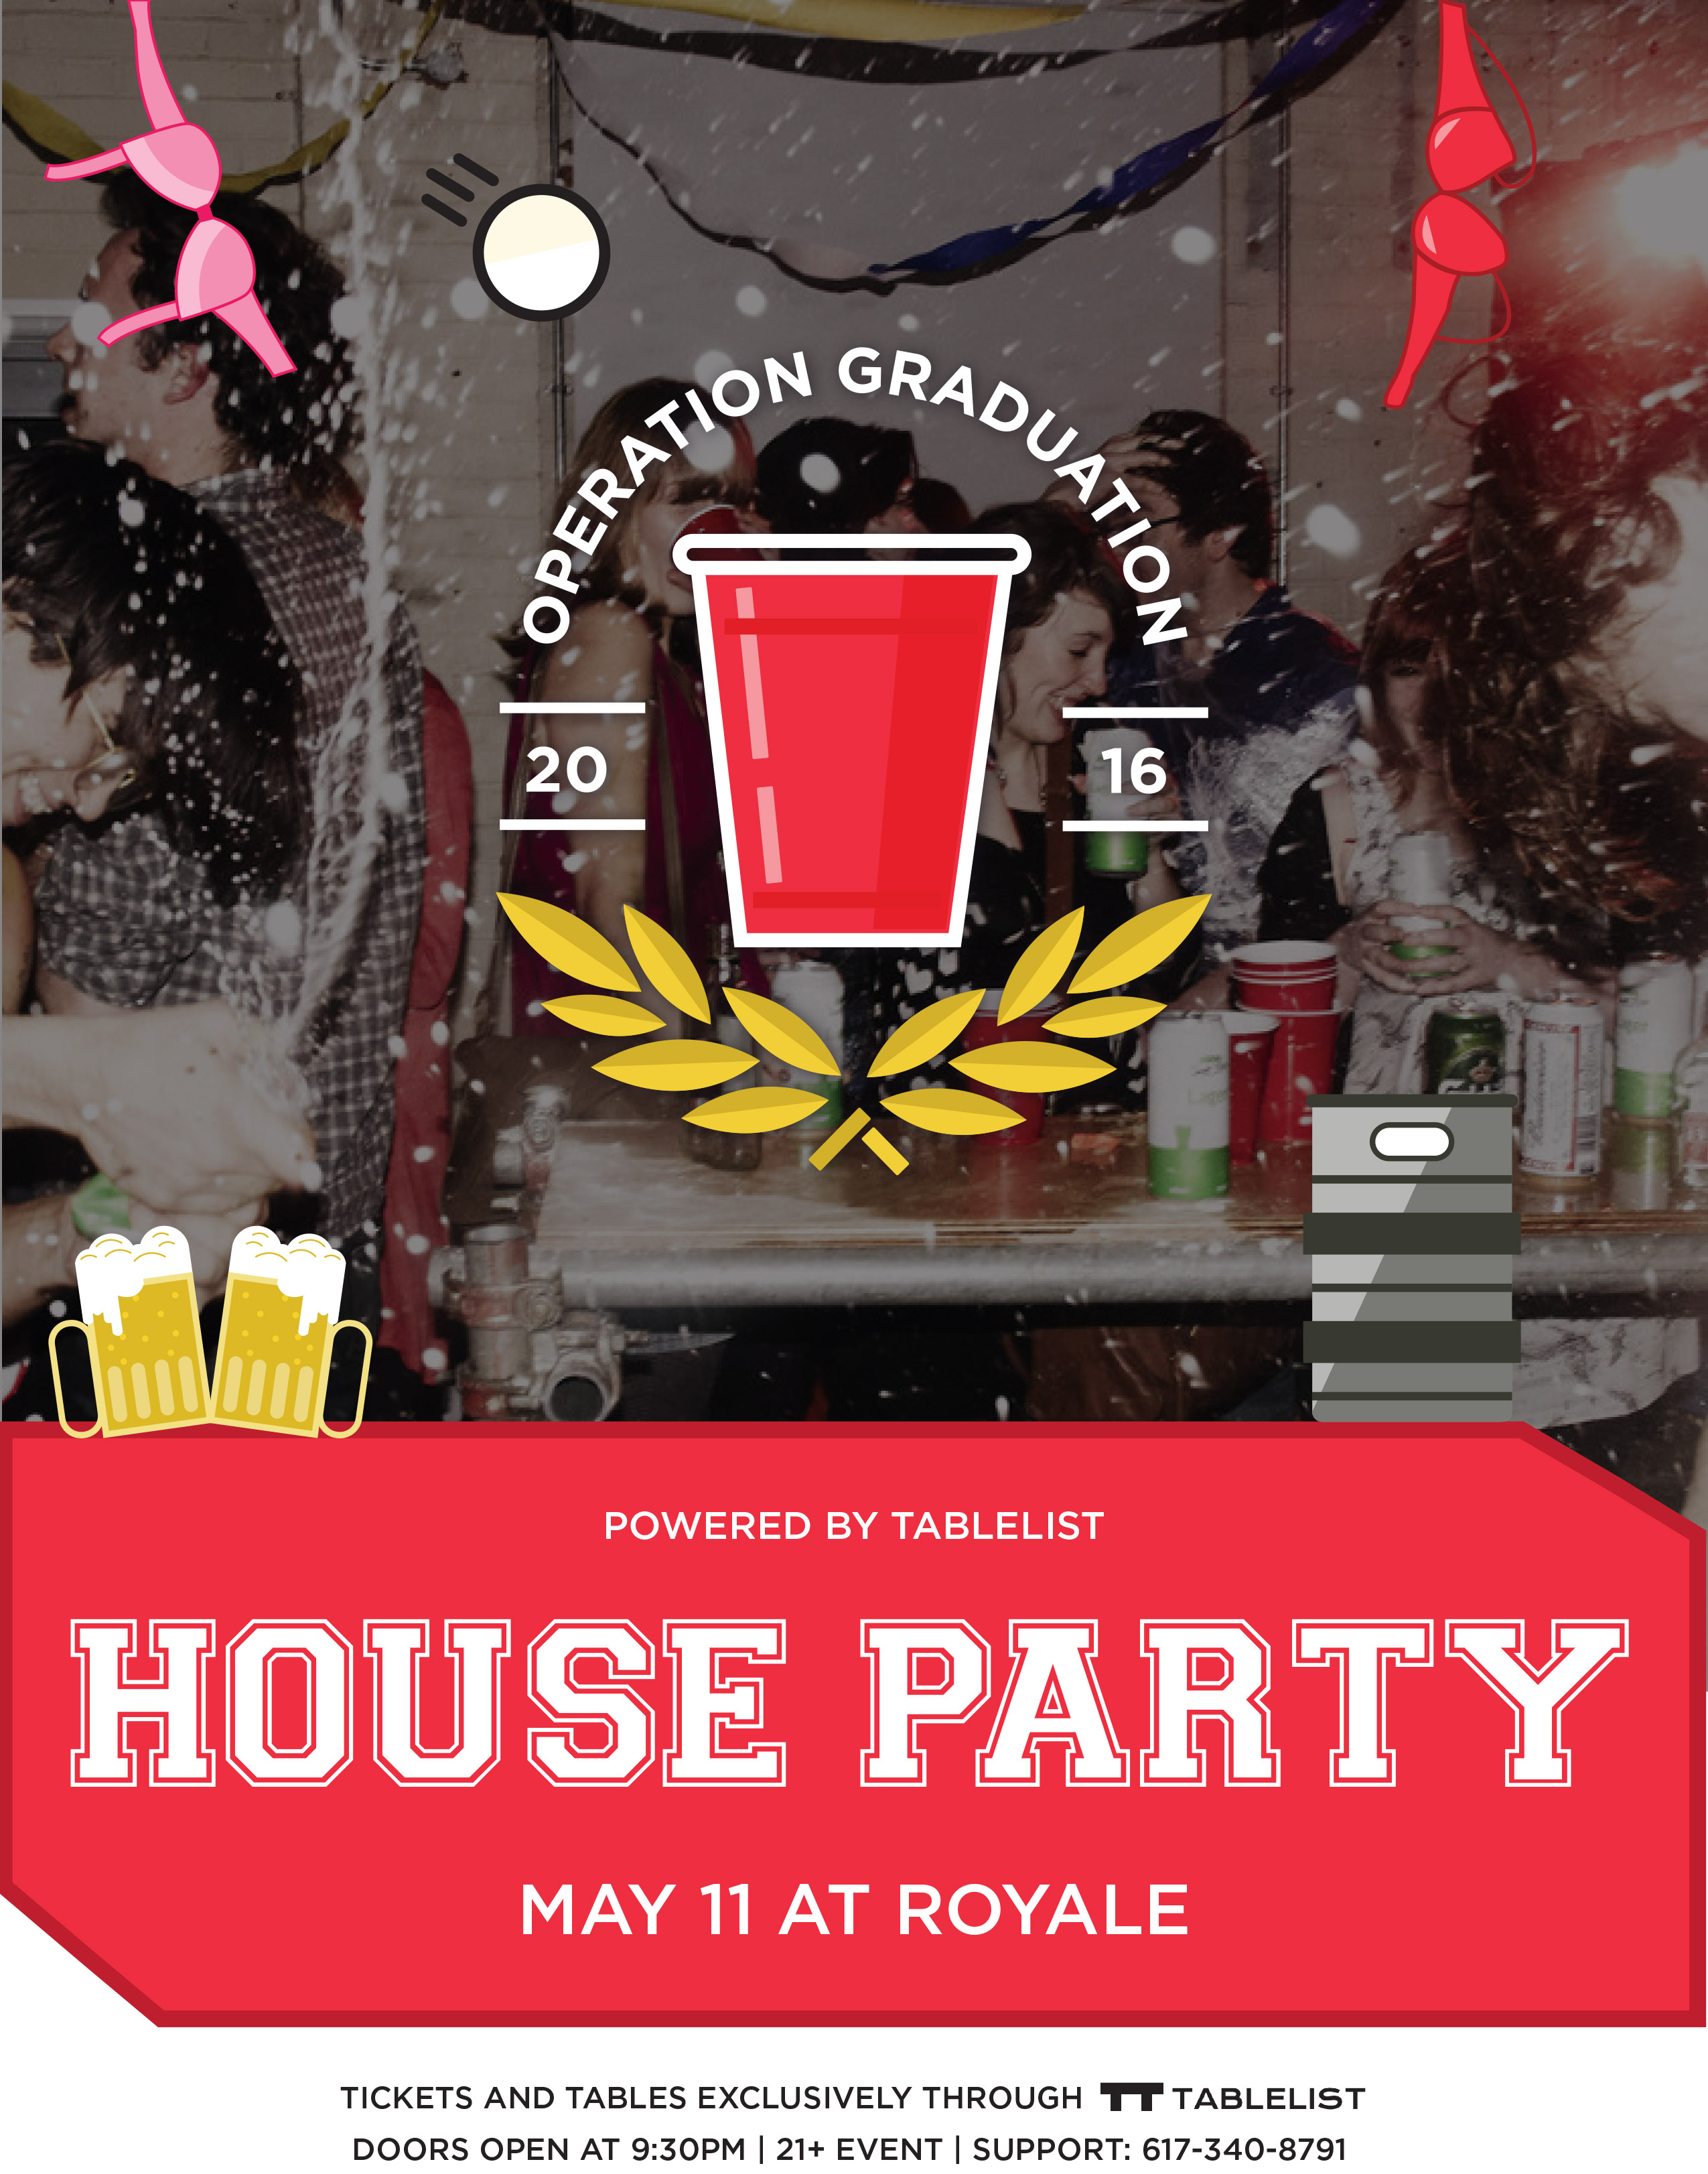 tablelist-operation-graduation-house-party-flyer-1.jpg